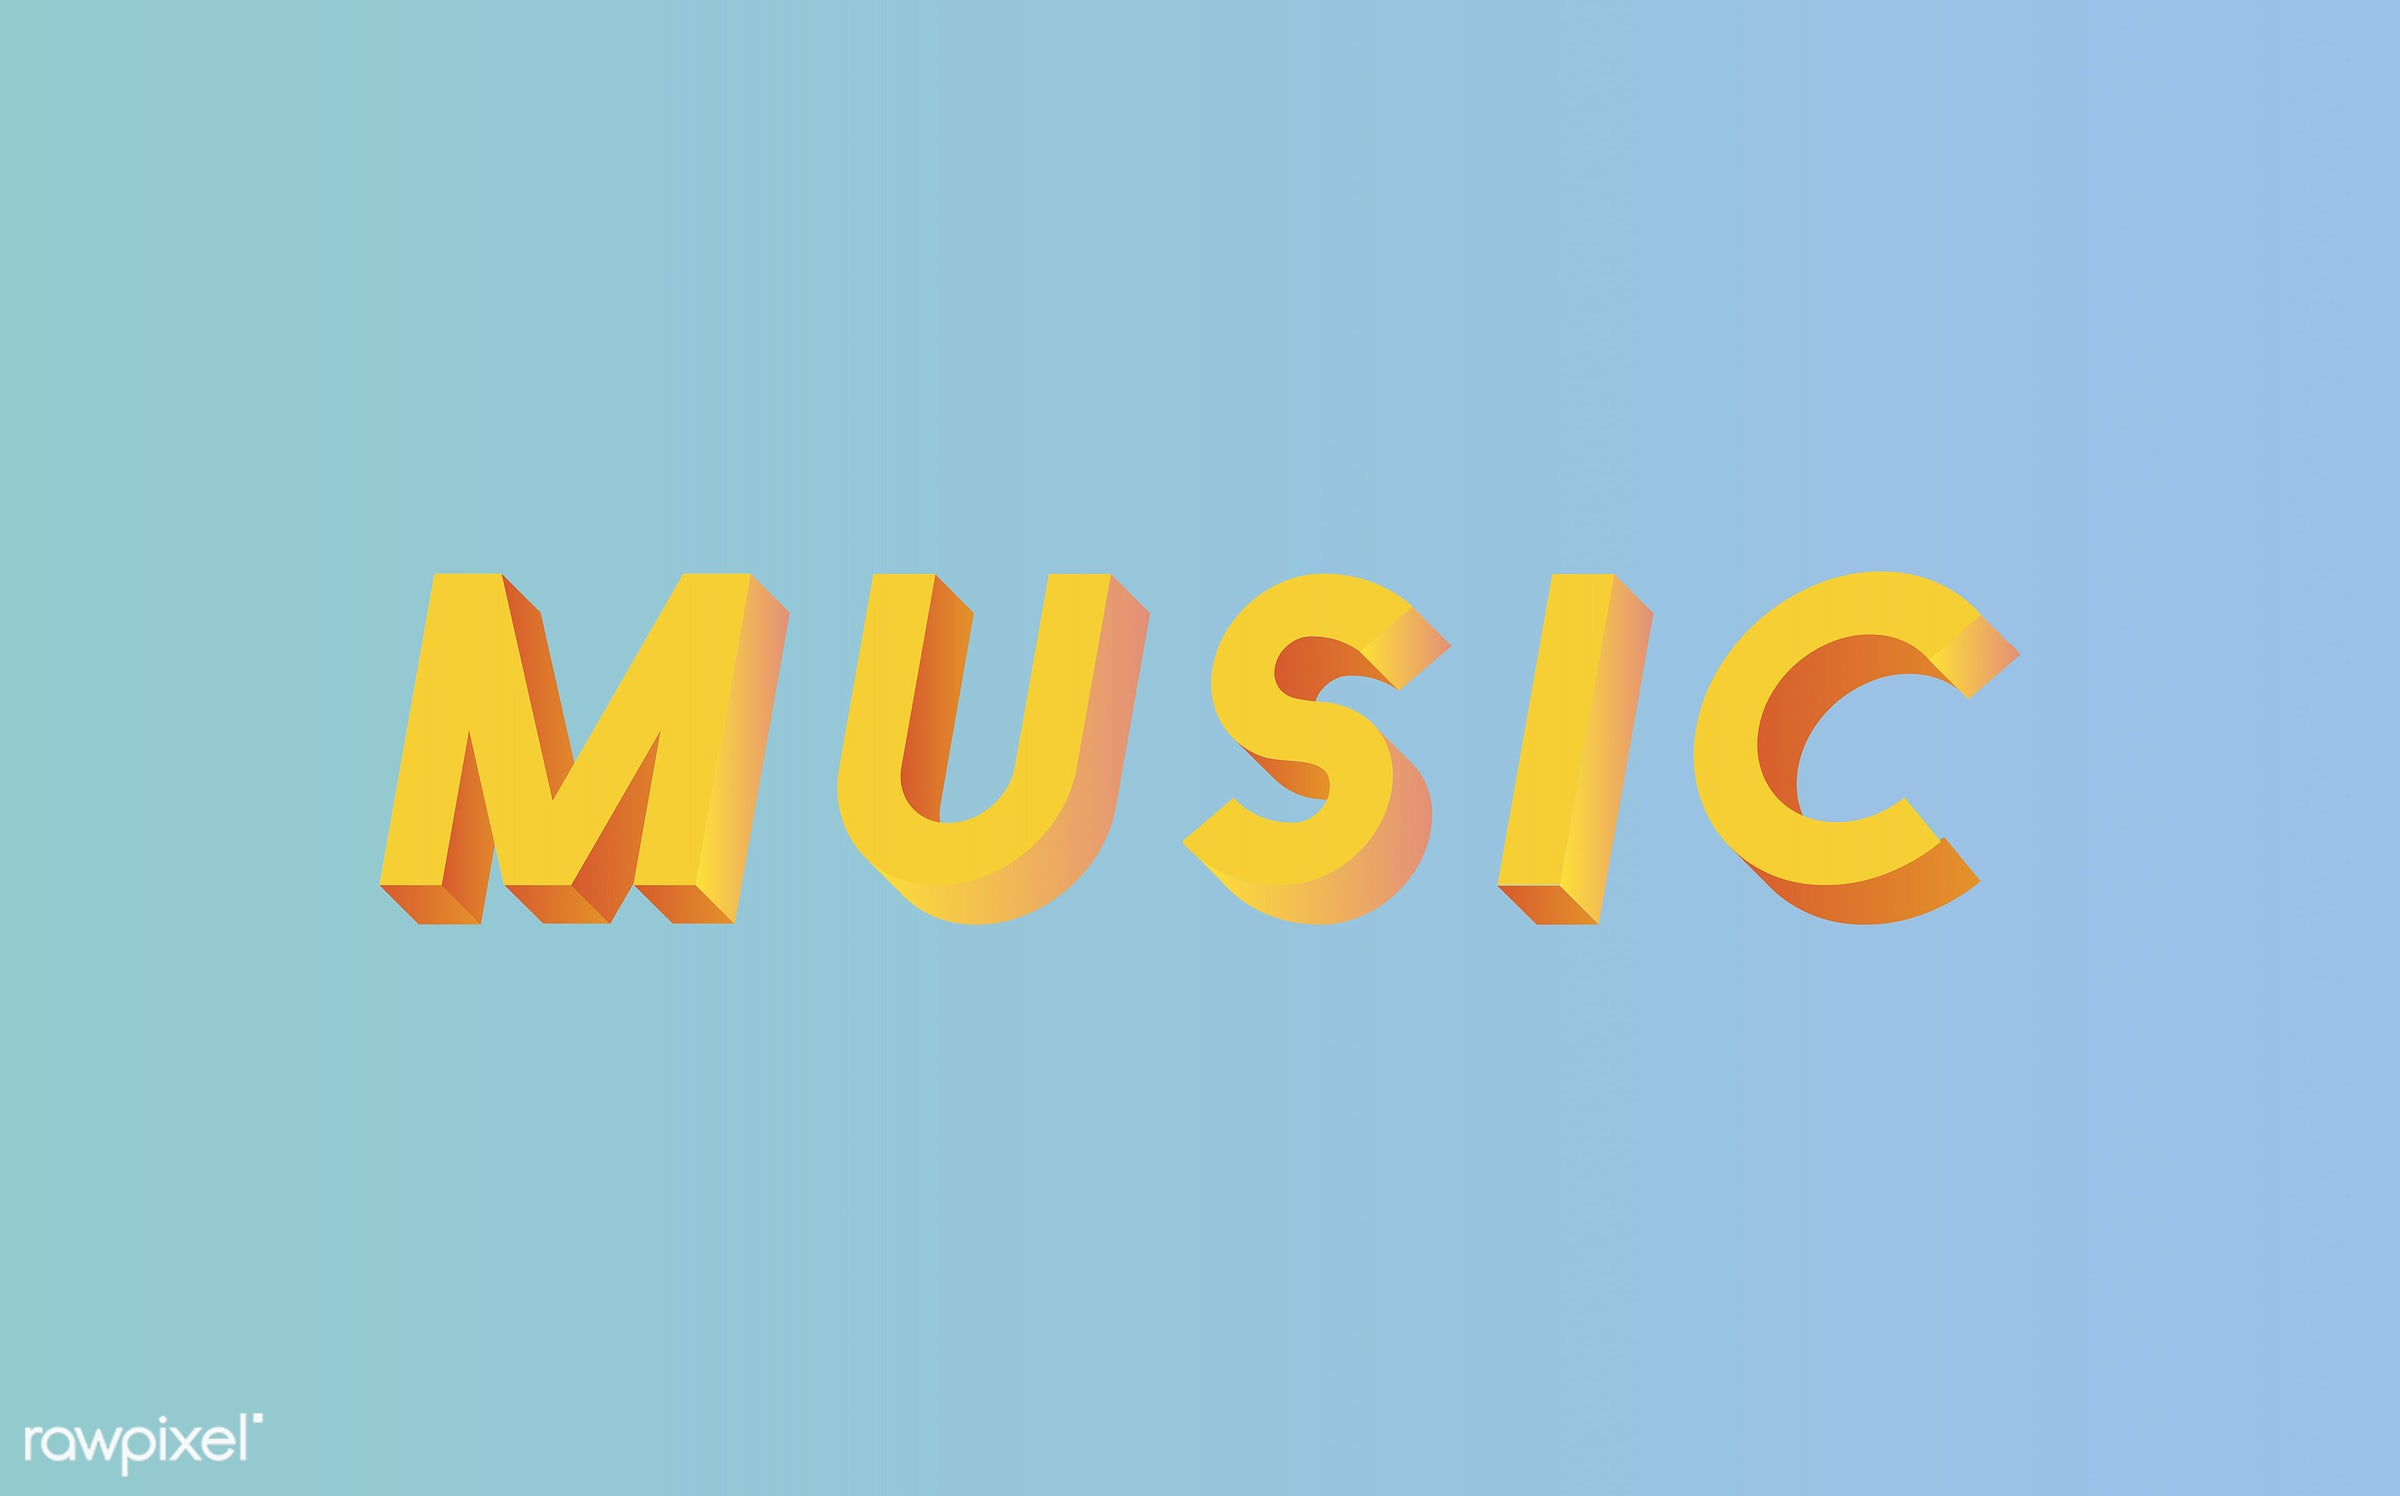 neon, colorful, 3d, three dimensional, vector, illustration, graphic, word, blue, yellow, music